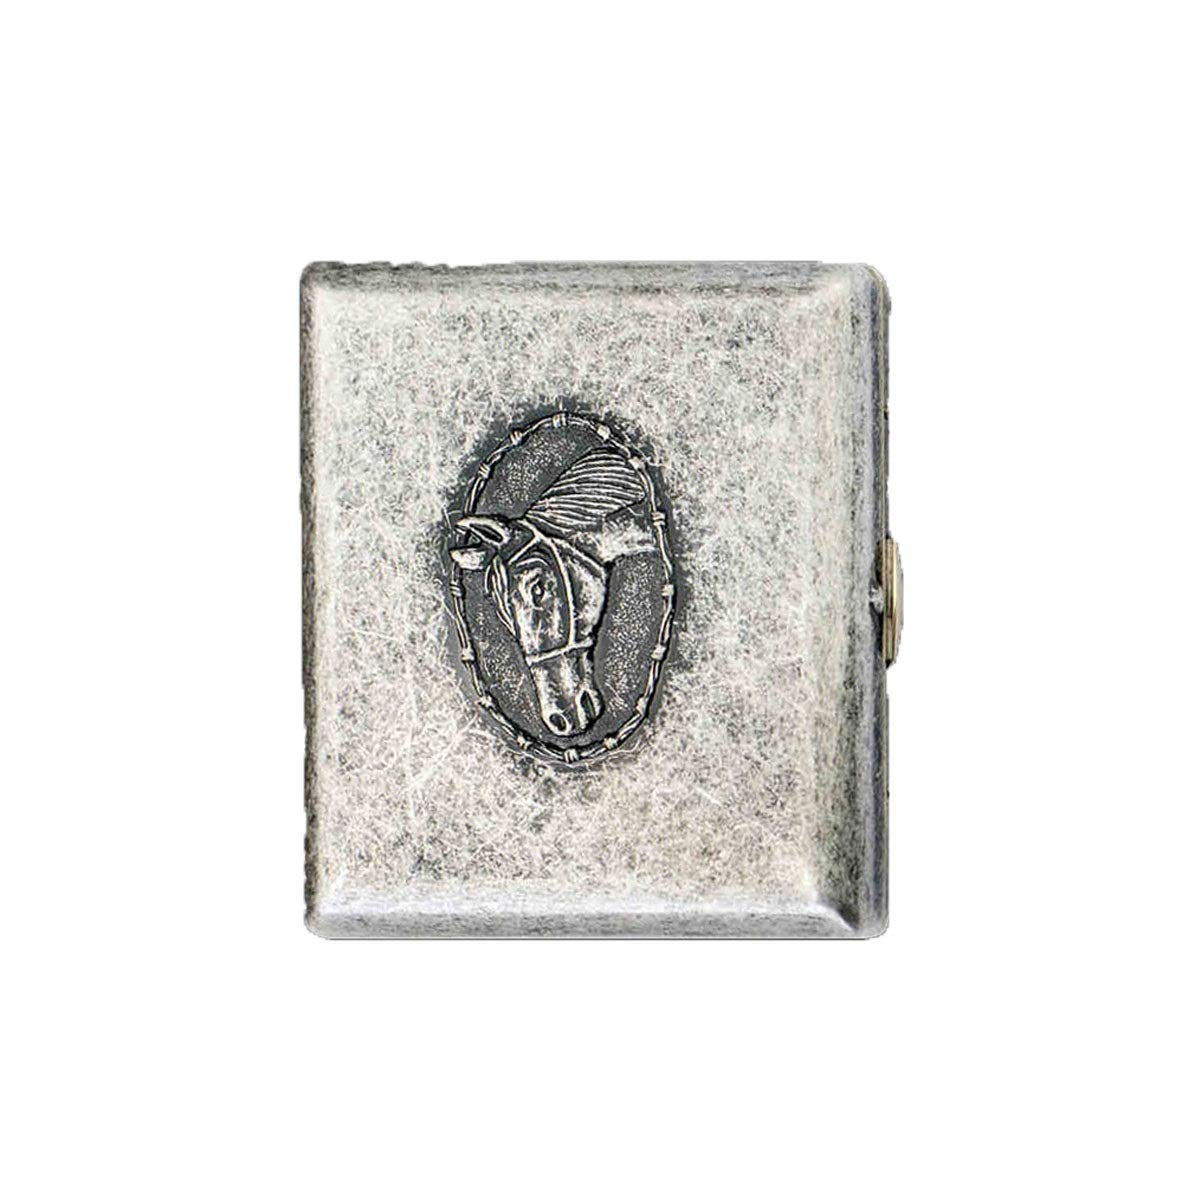 ZHONGYUE Cigarette Case, Metal Creative Cigarette Case, 20 Capacity, Men's Cigarette Case Unique Design, Sturdy and Lightweight. (Color : Silver)